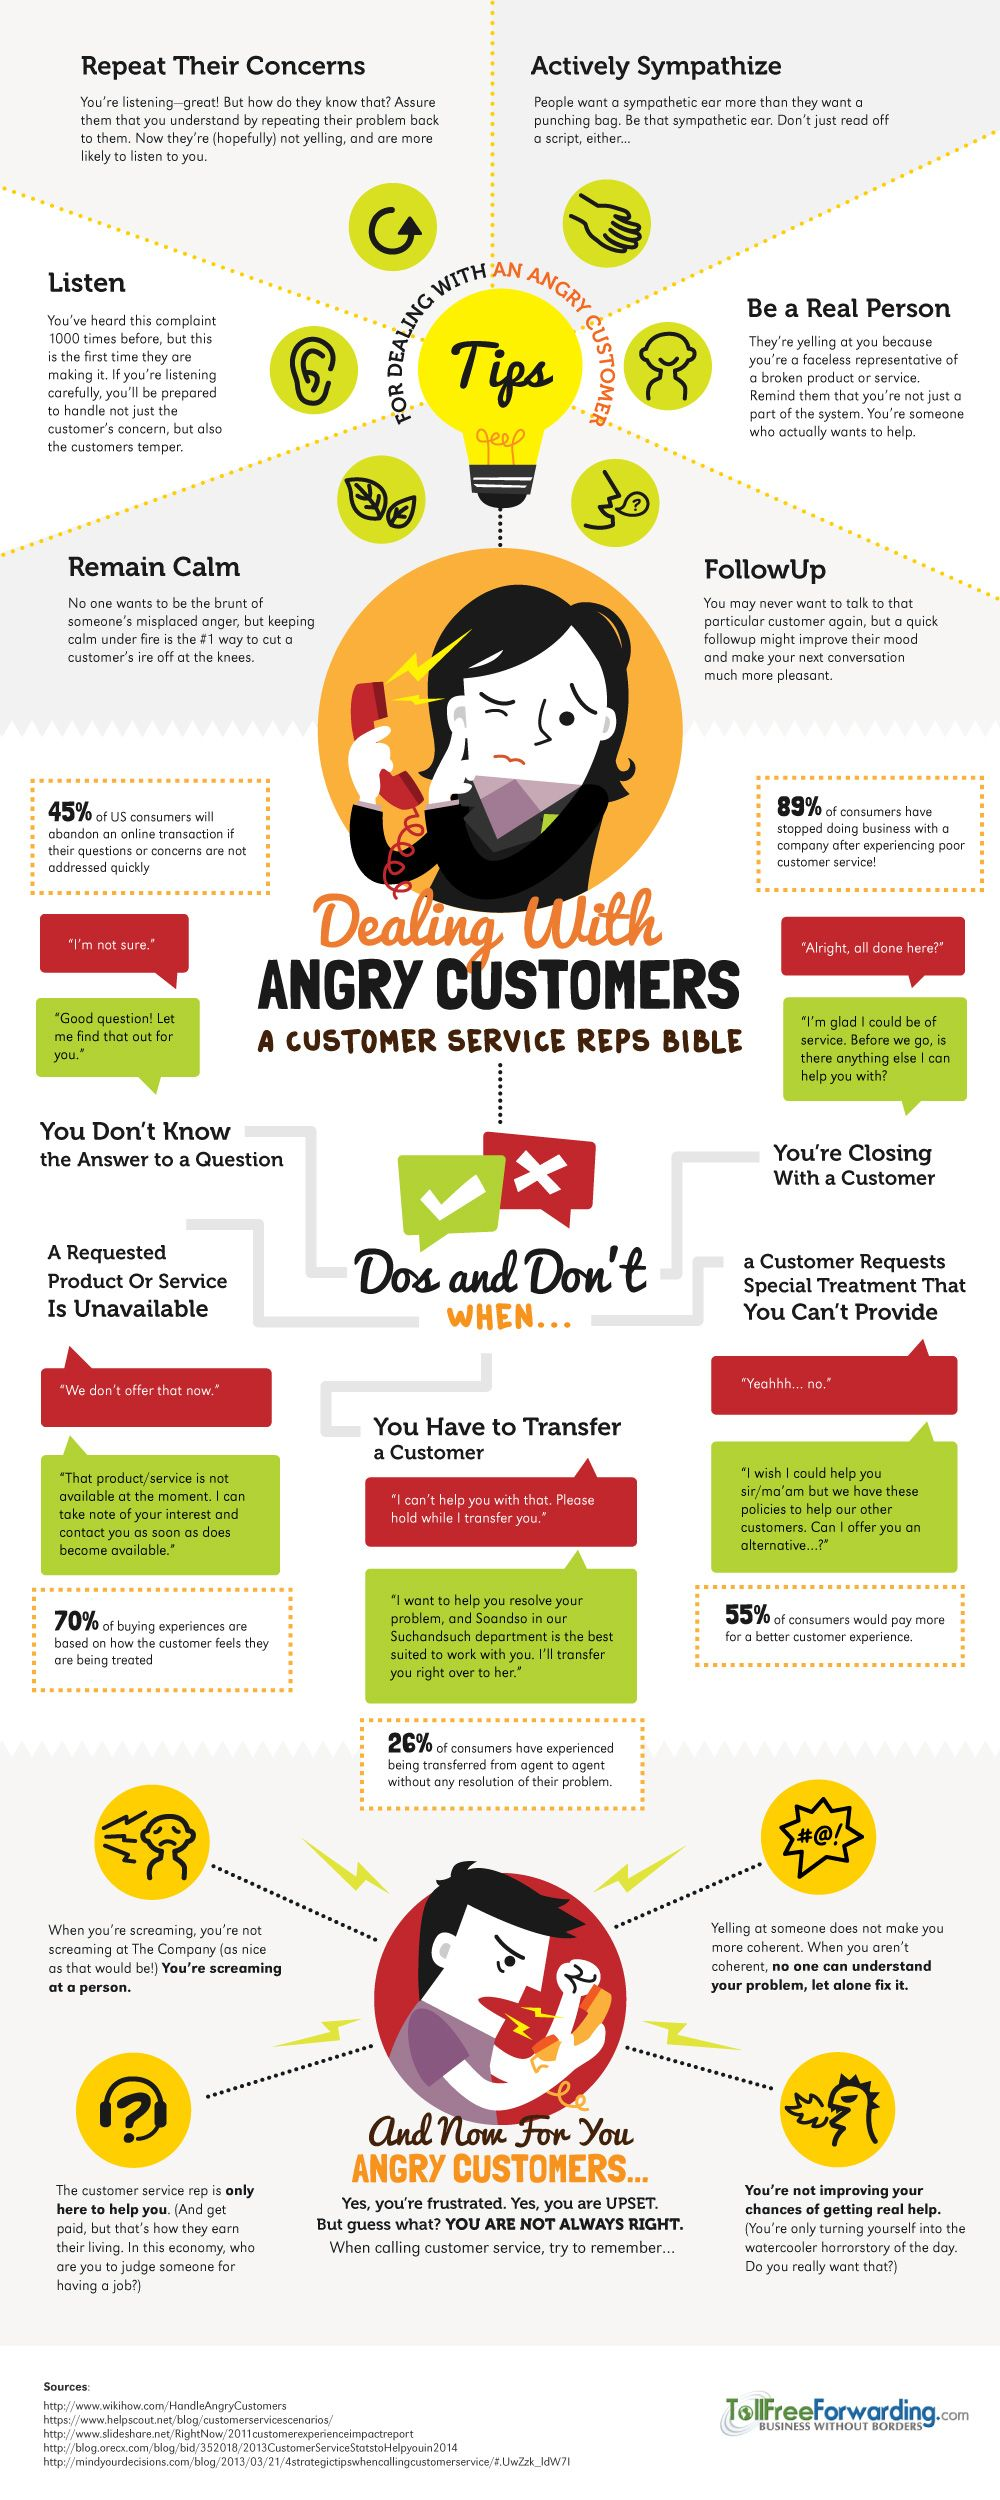 Listening v Hearing How to Diffuse Angry Customers Customer